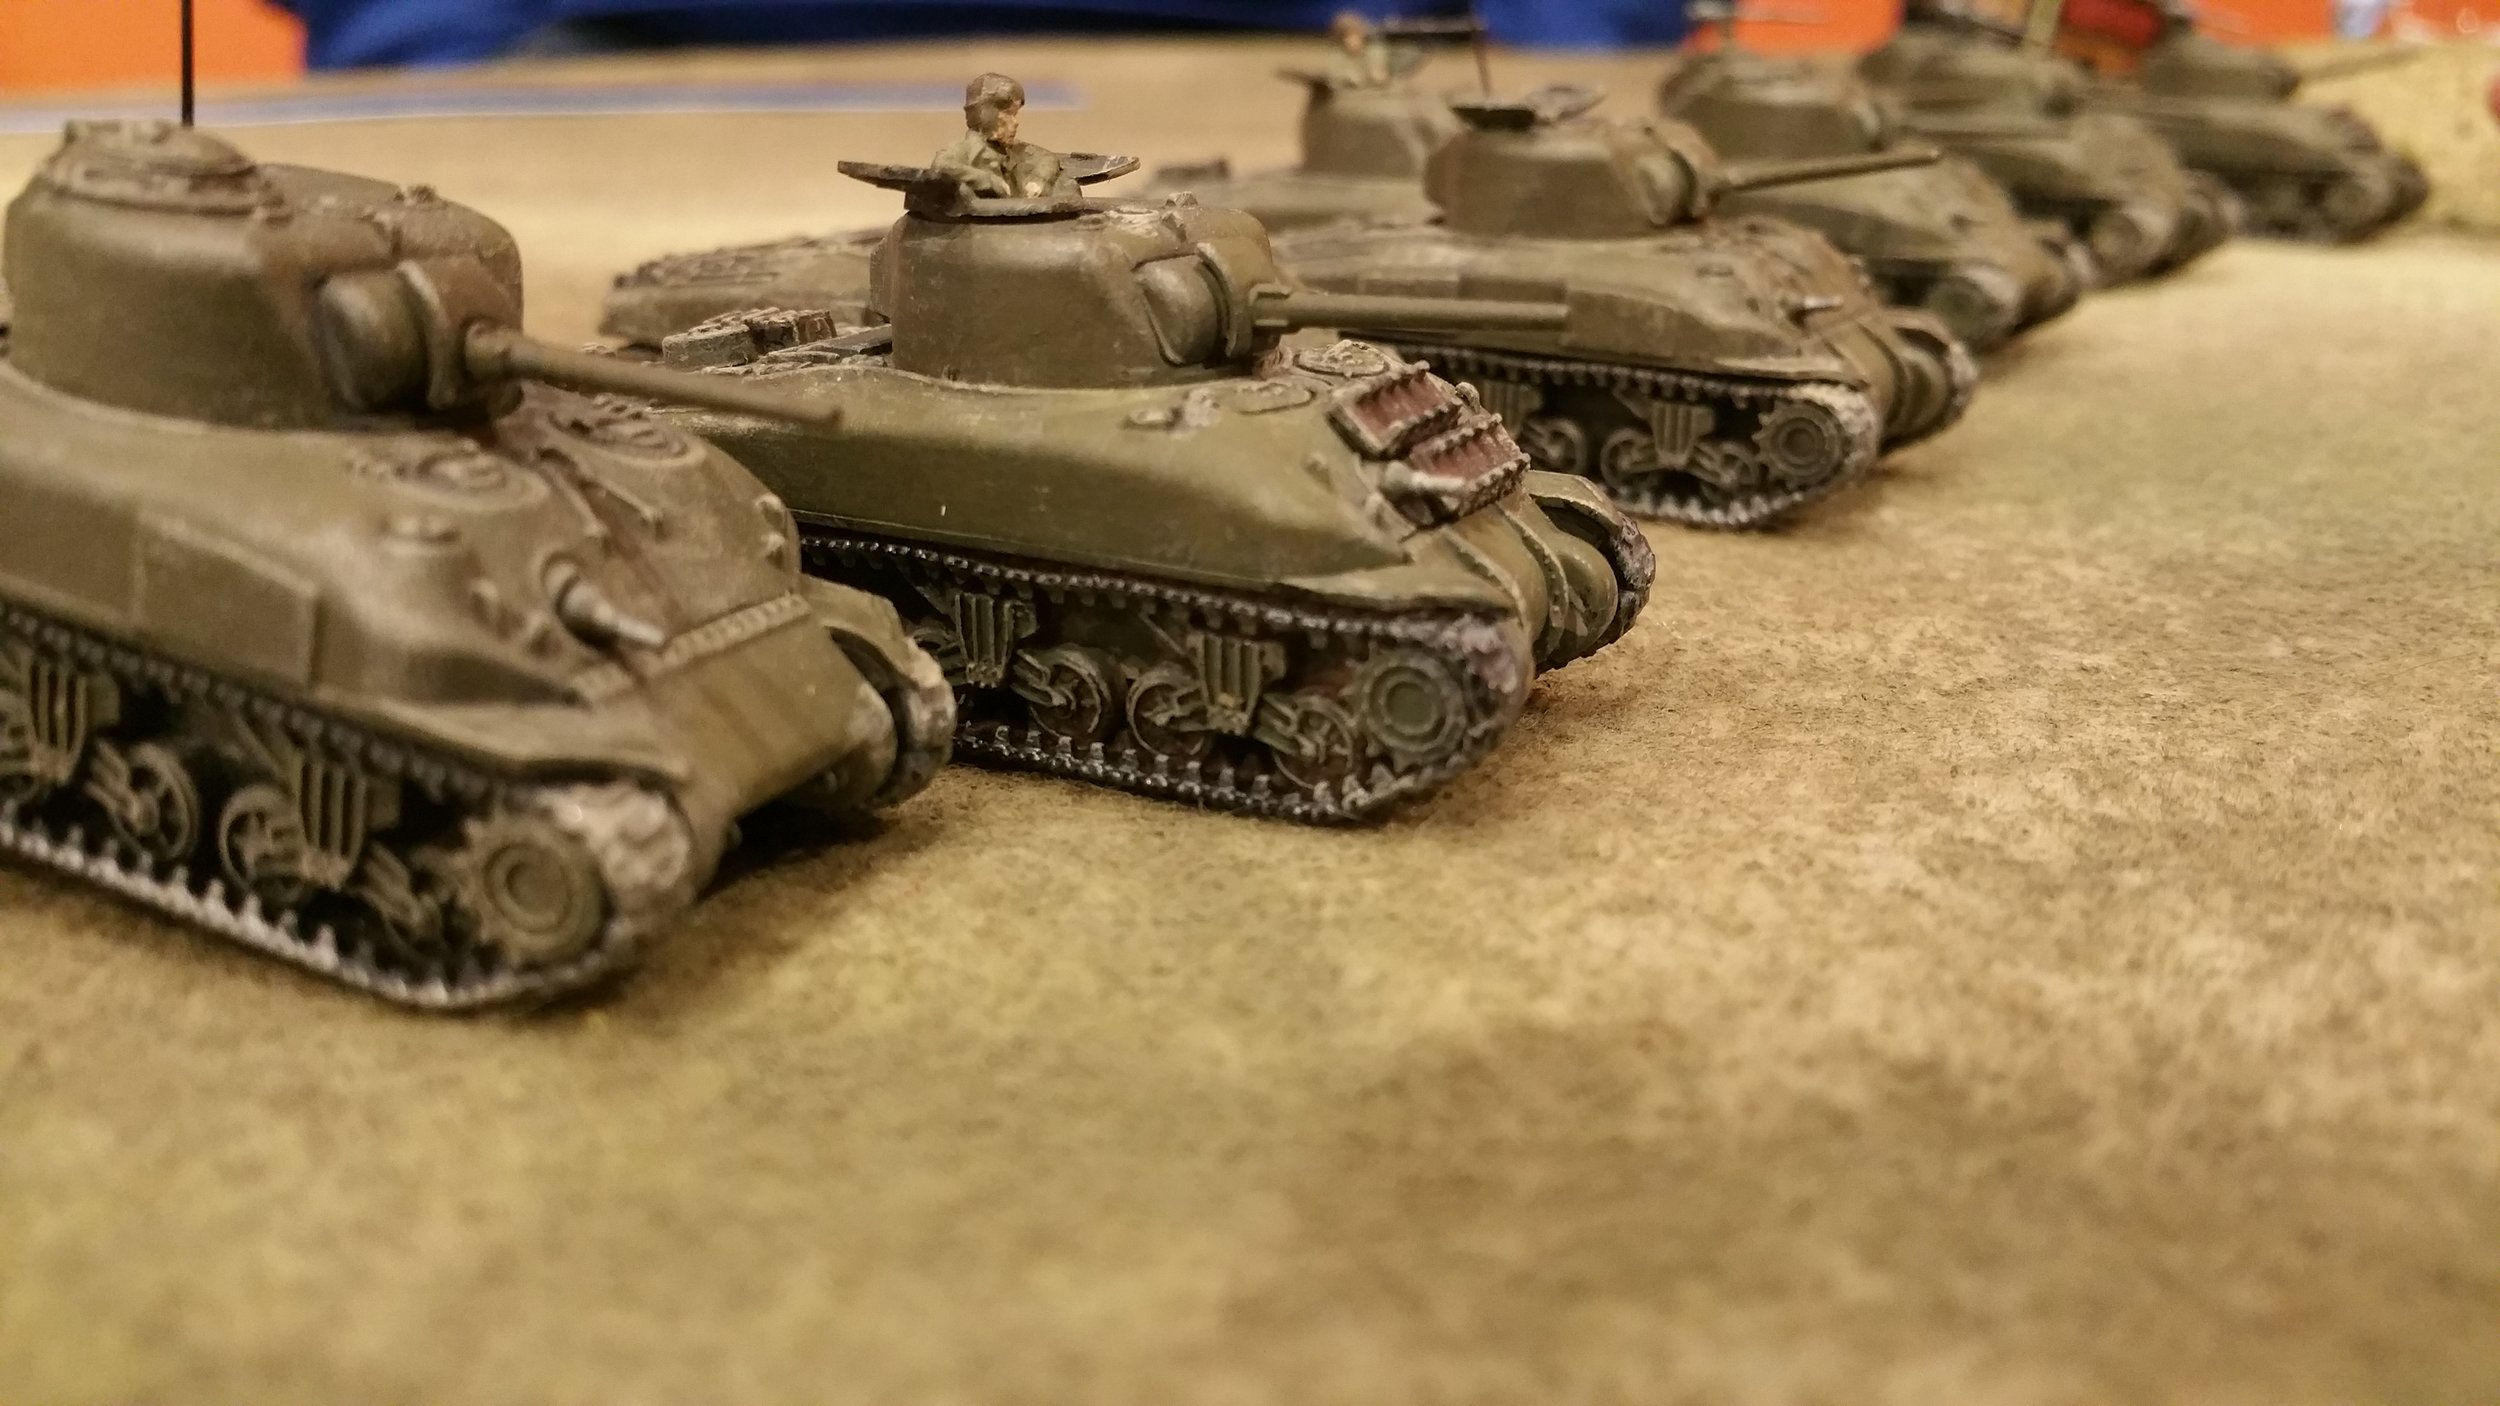 shermans duel with tigers